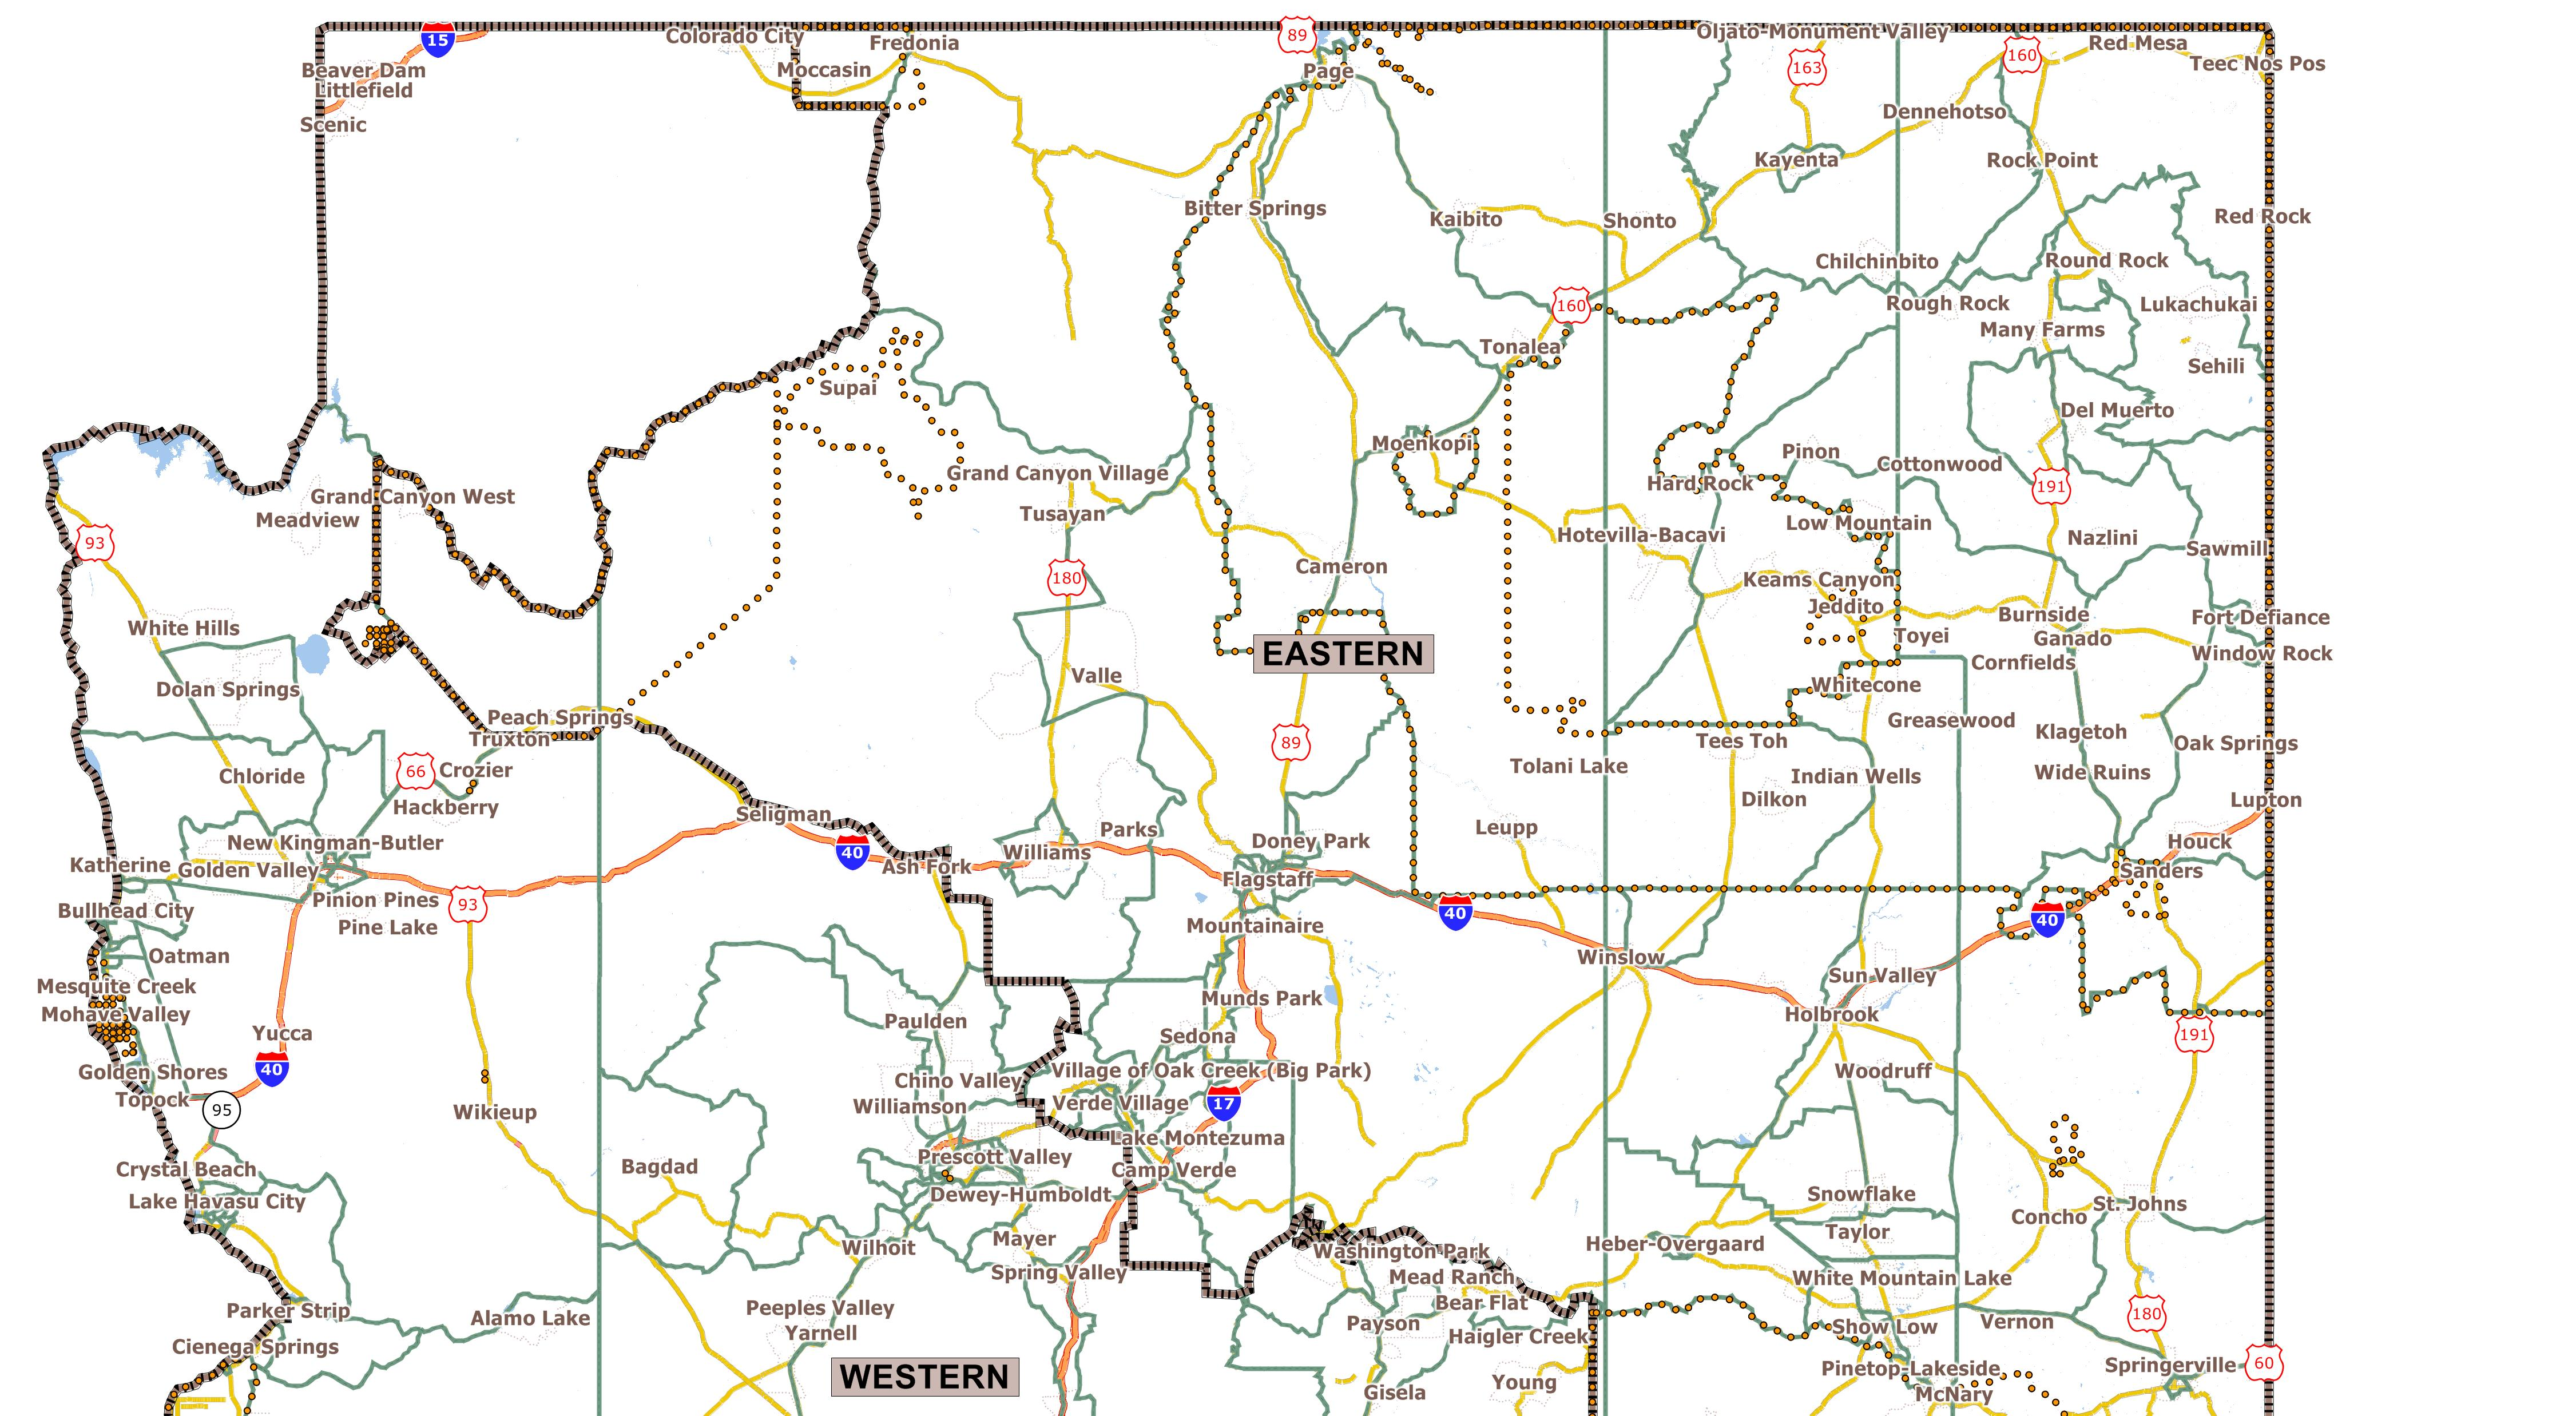 Public Mapping Proposals - Map of northern arizona